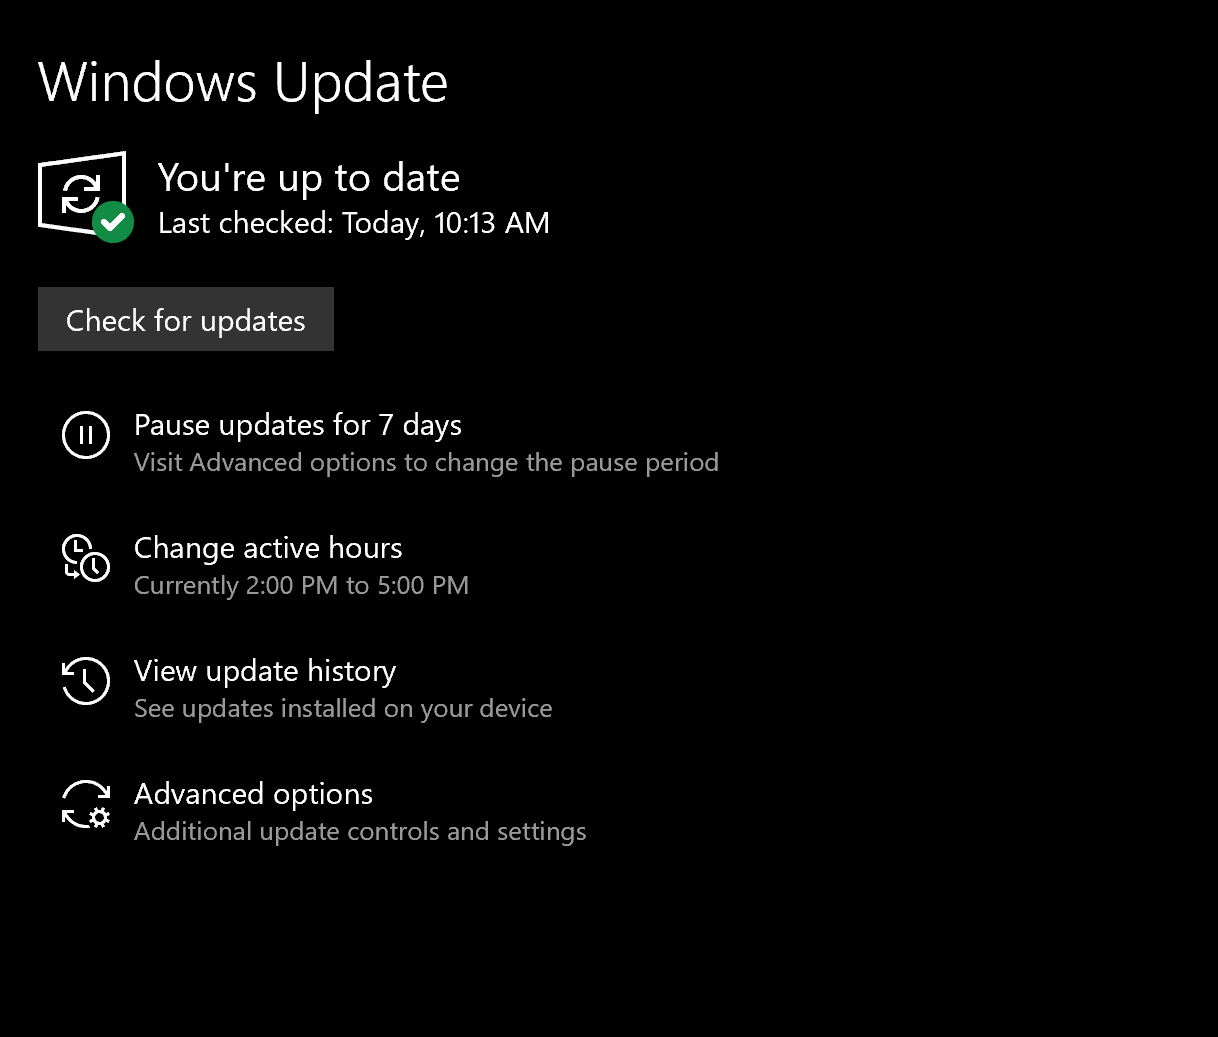 Windows 10 Versions 1903 and 1909 support WLS2